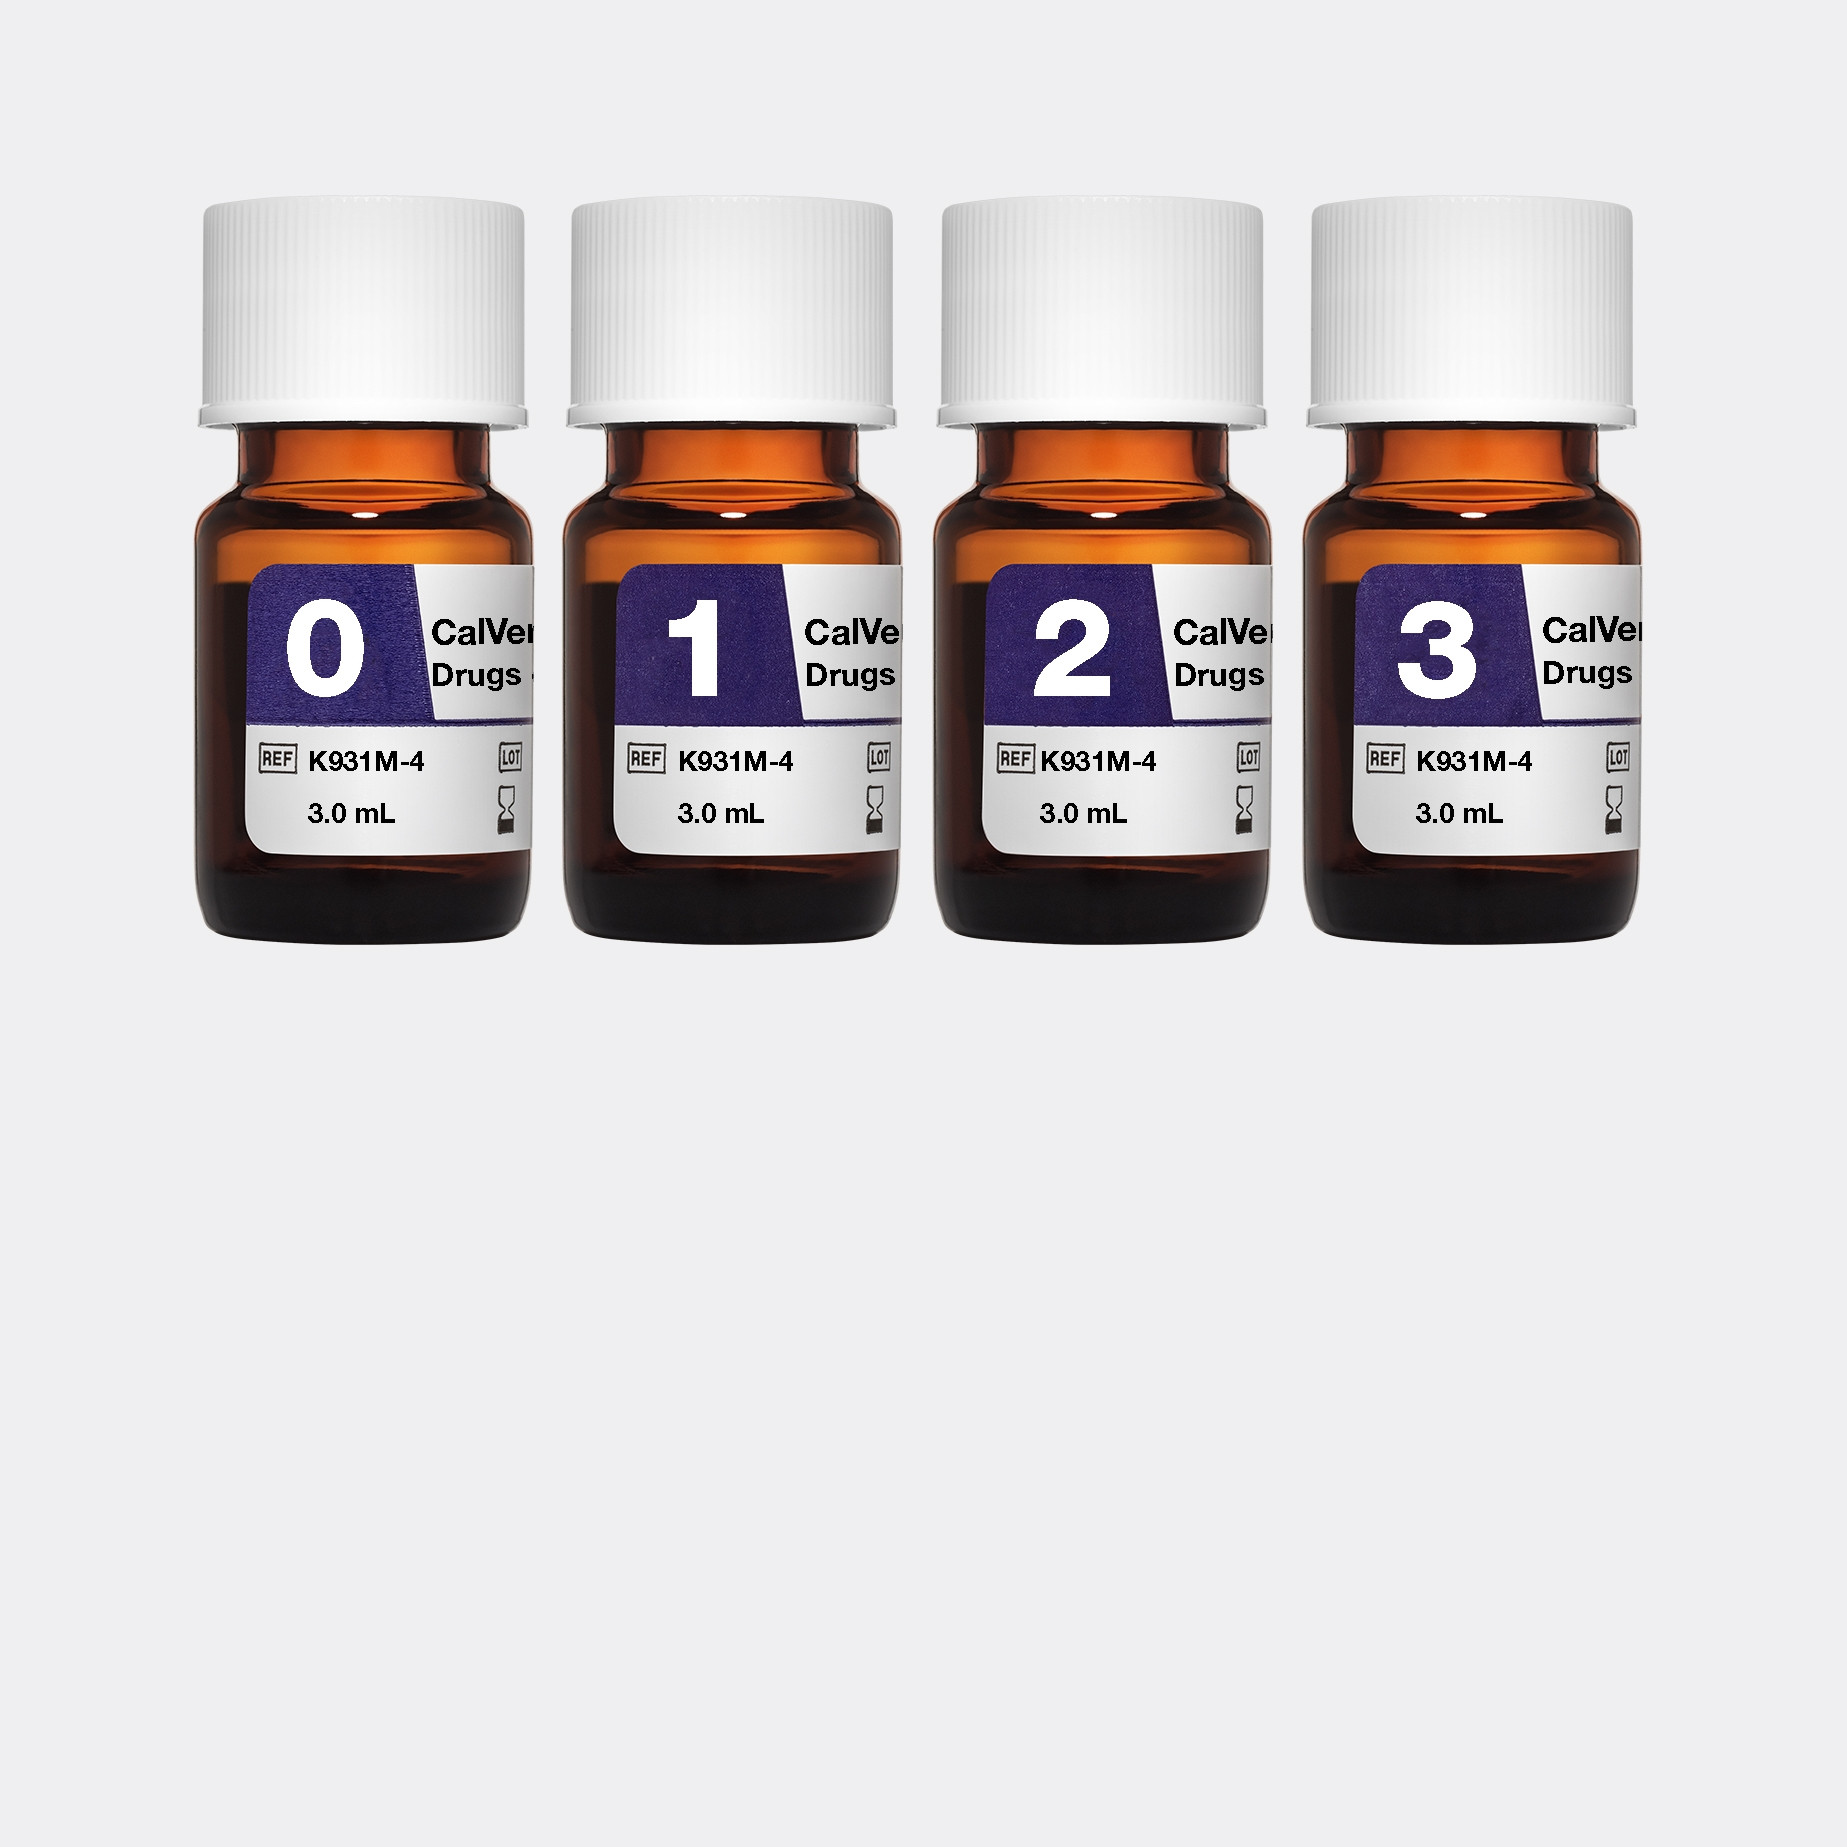 CalVer FLQ Drugs of Abuse for Roche Systems